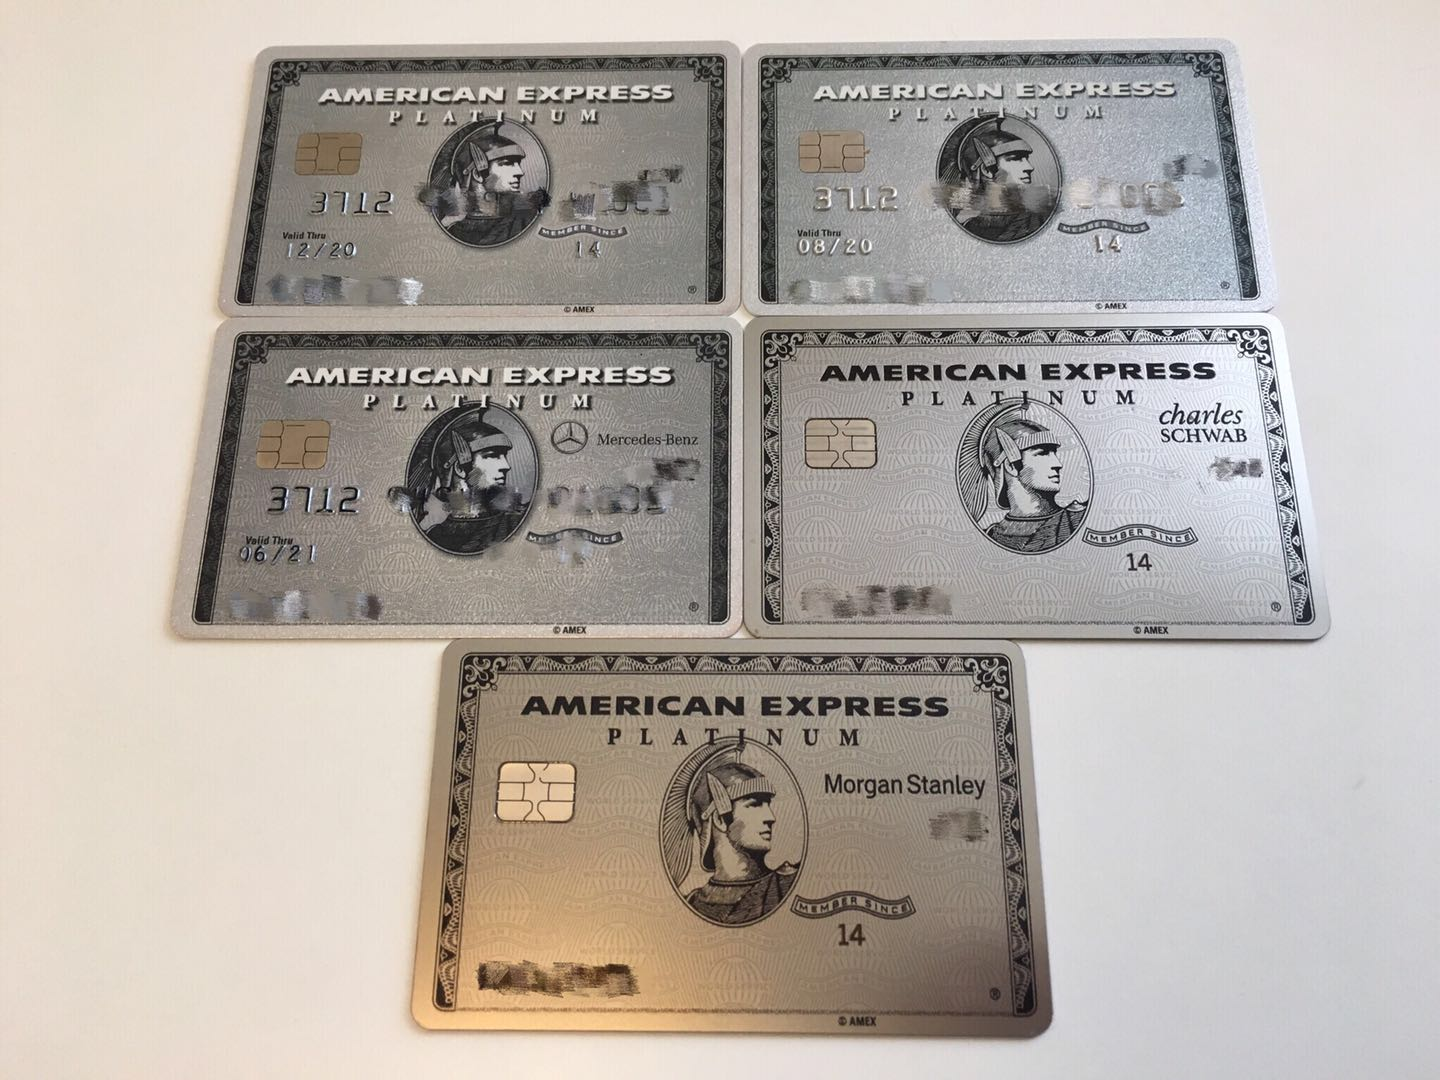 American Express Platinum Rental Car Discounts